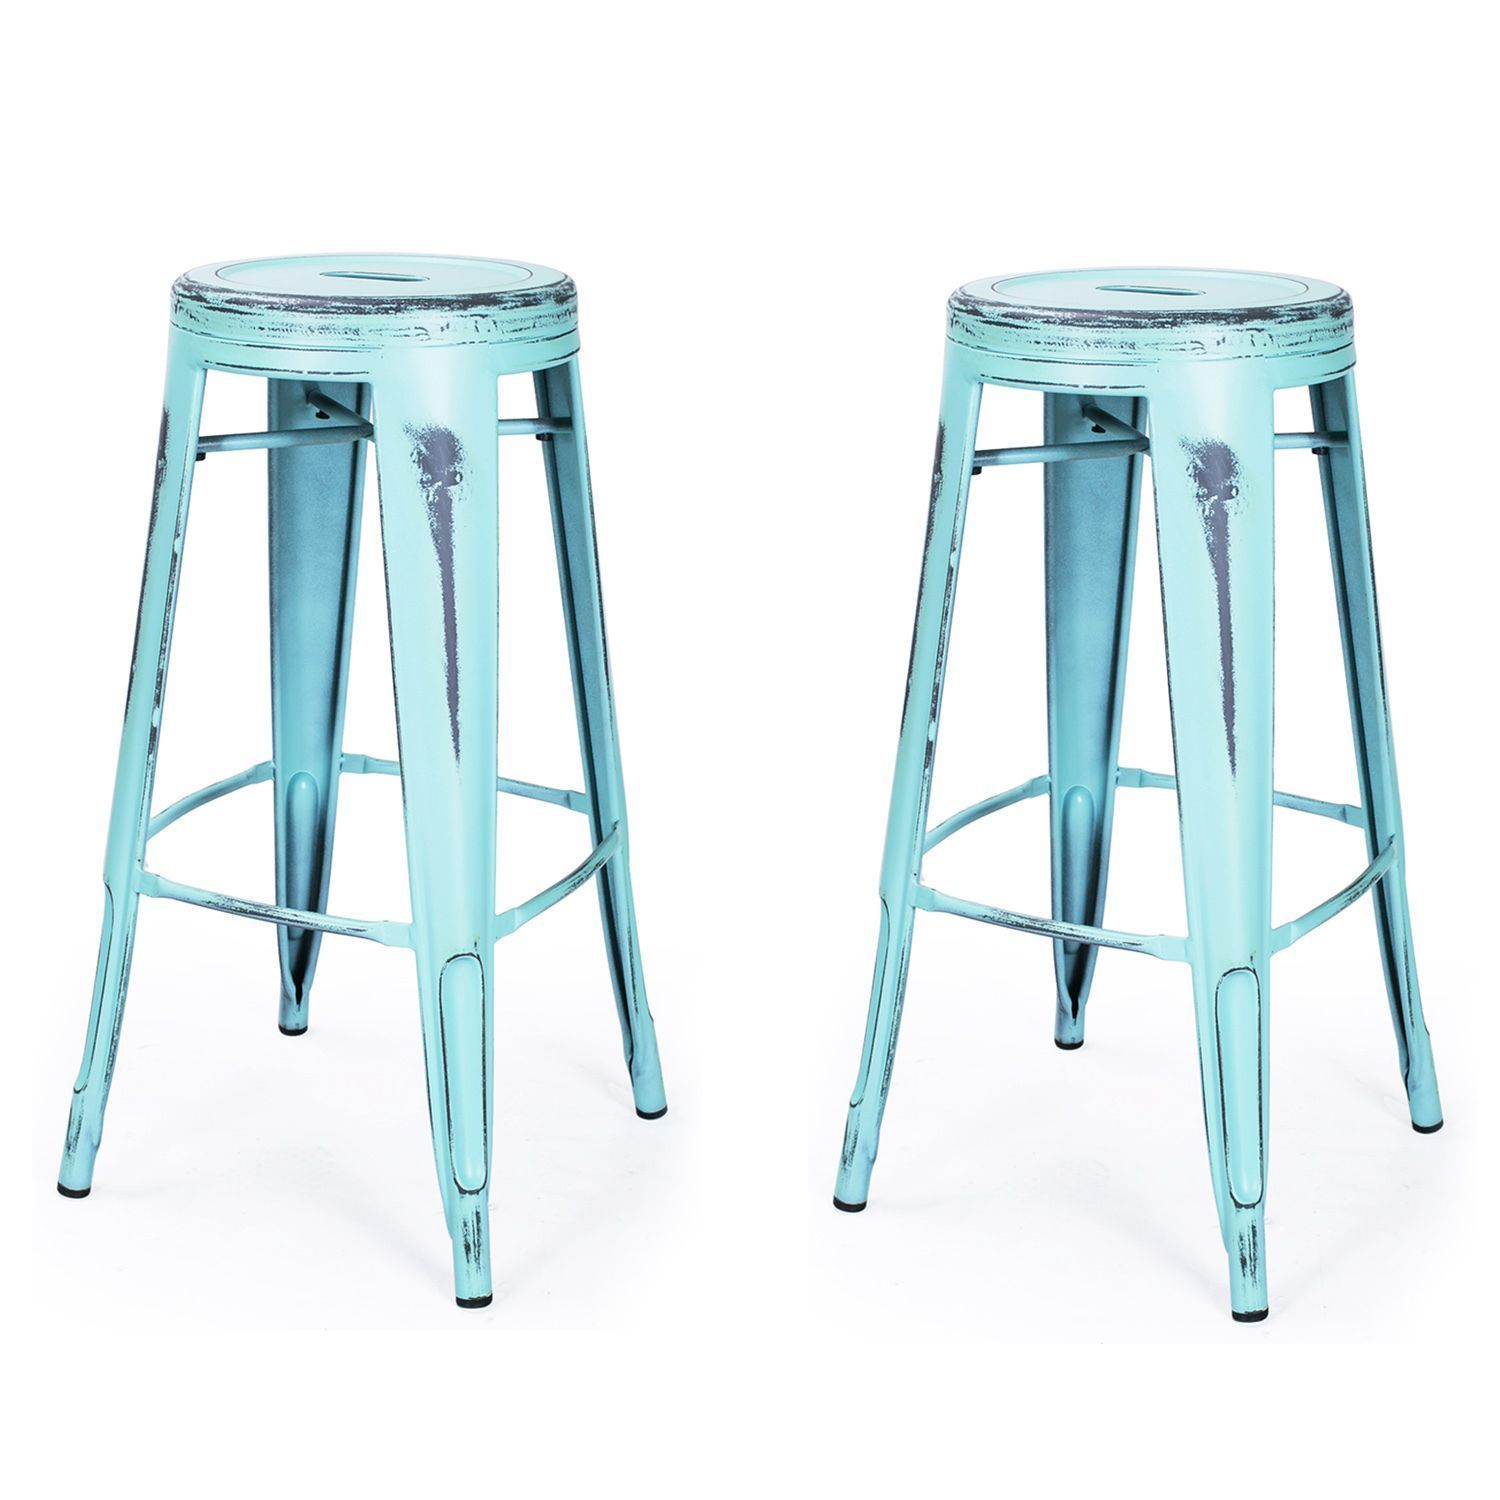 Adeco French Bistro Glossy Powder Coated Metal Bar Stools with ...